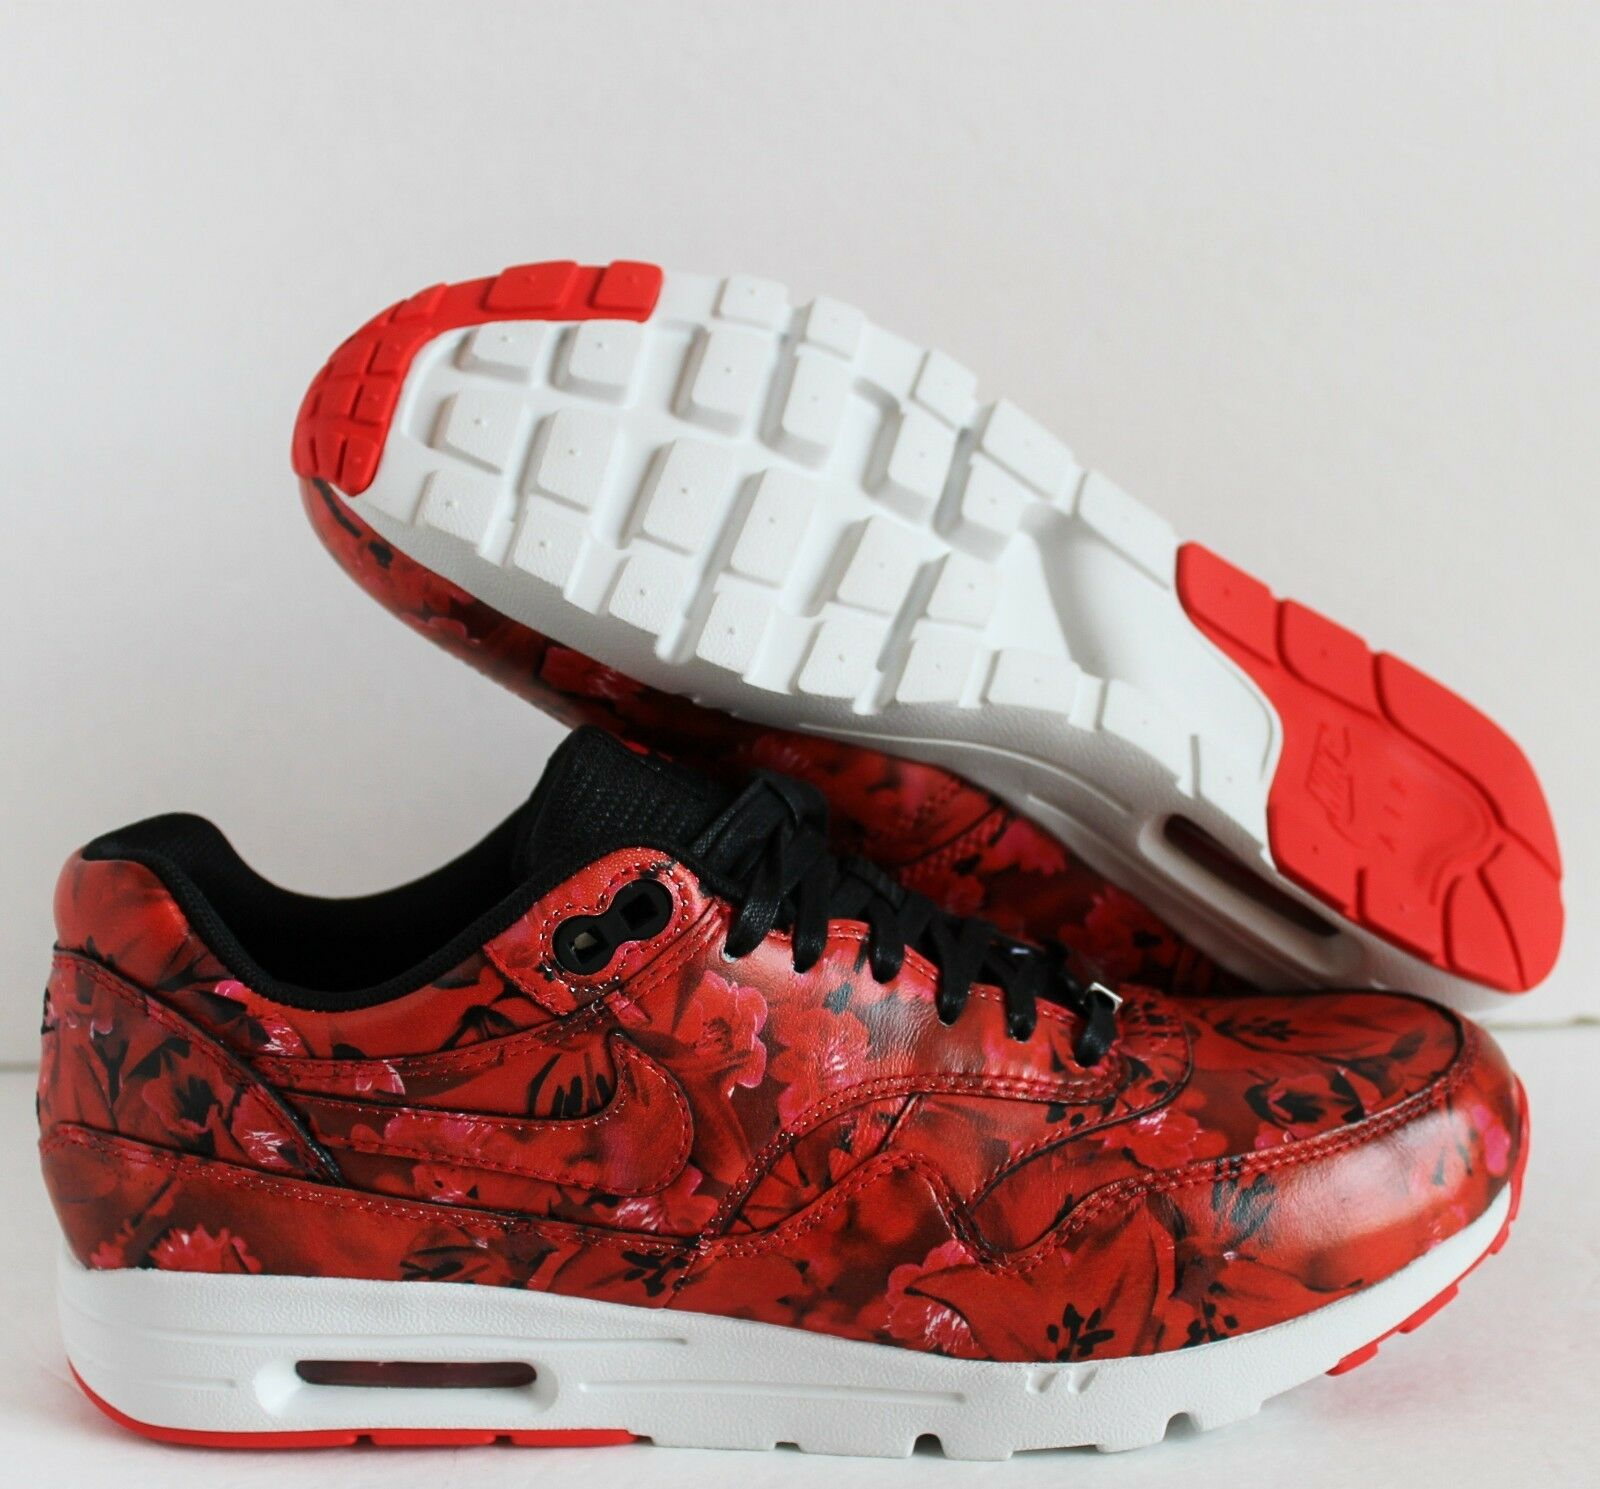 Nike Air Max 1 ULTRA LOTC QS SHANGHAI CITY PACK rouge sz 7 FLORAL